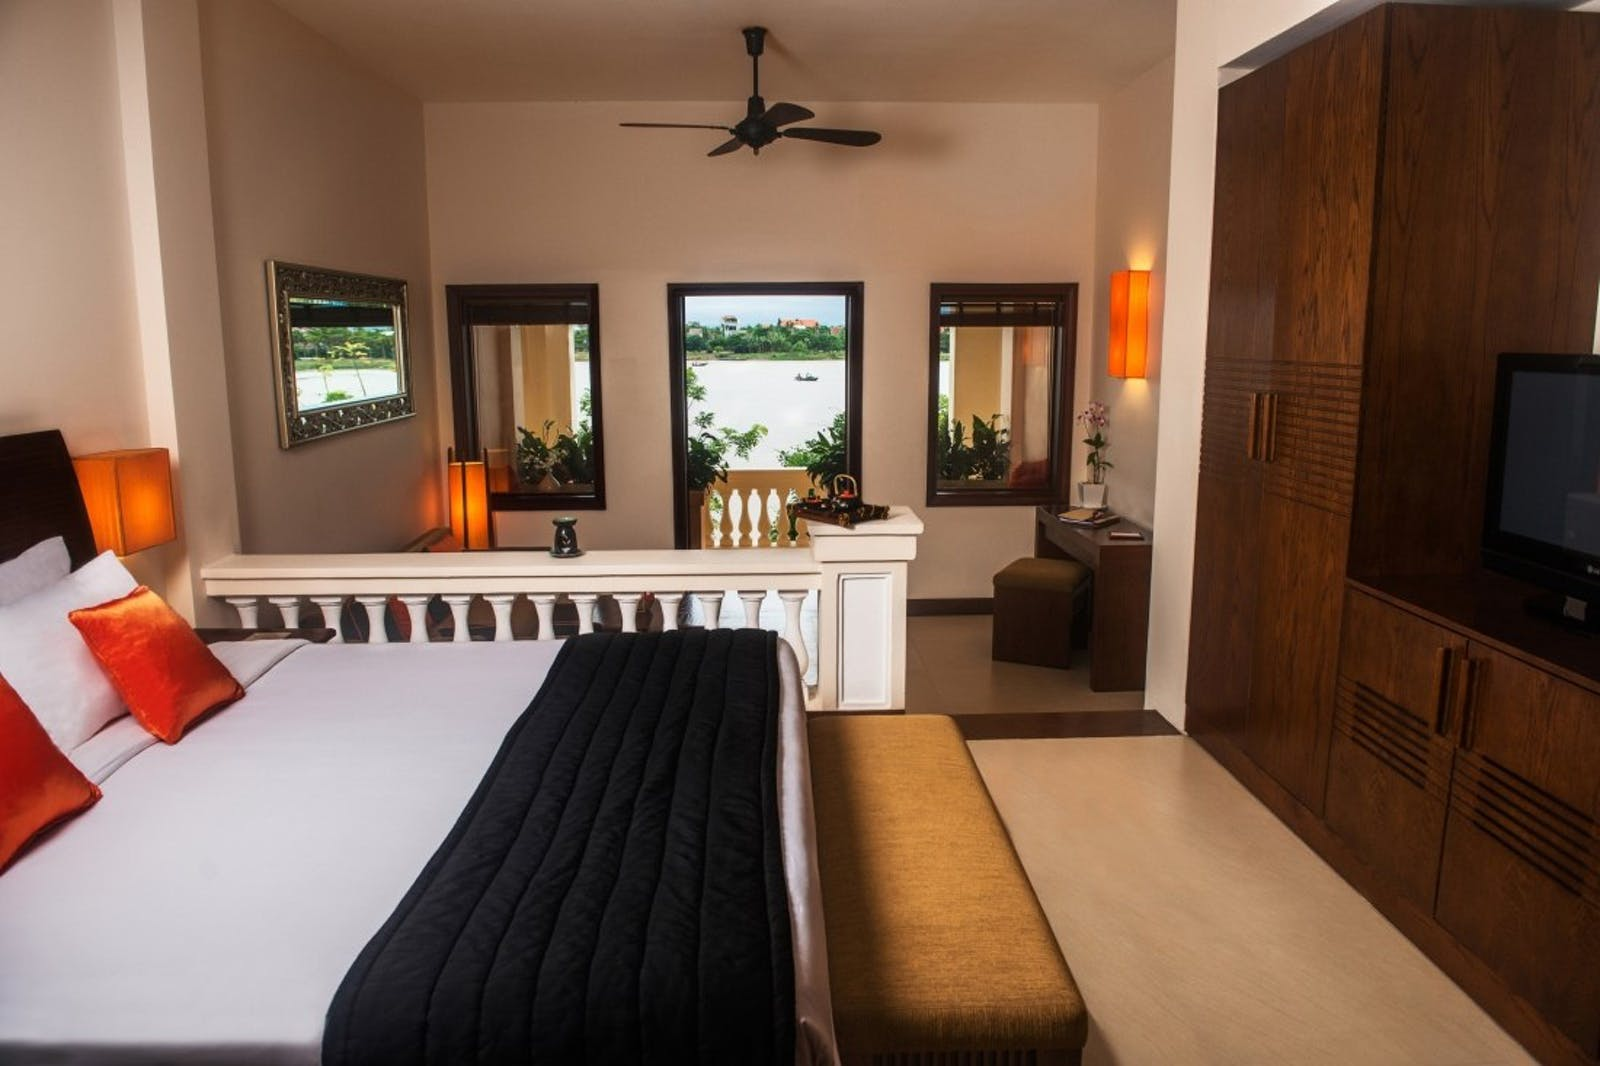 Junior River View suite at Anantara Hoi An Resort